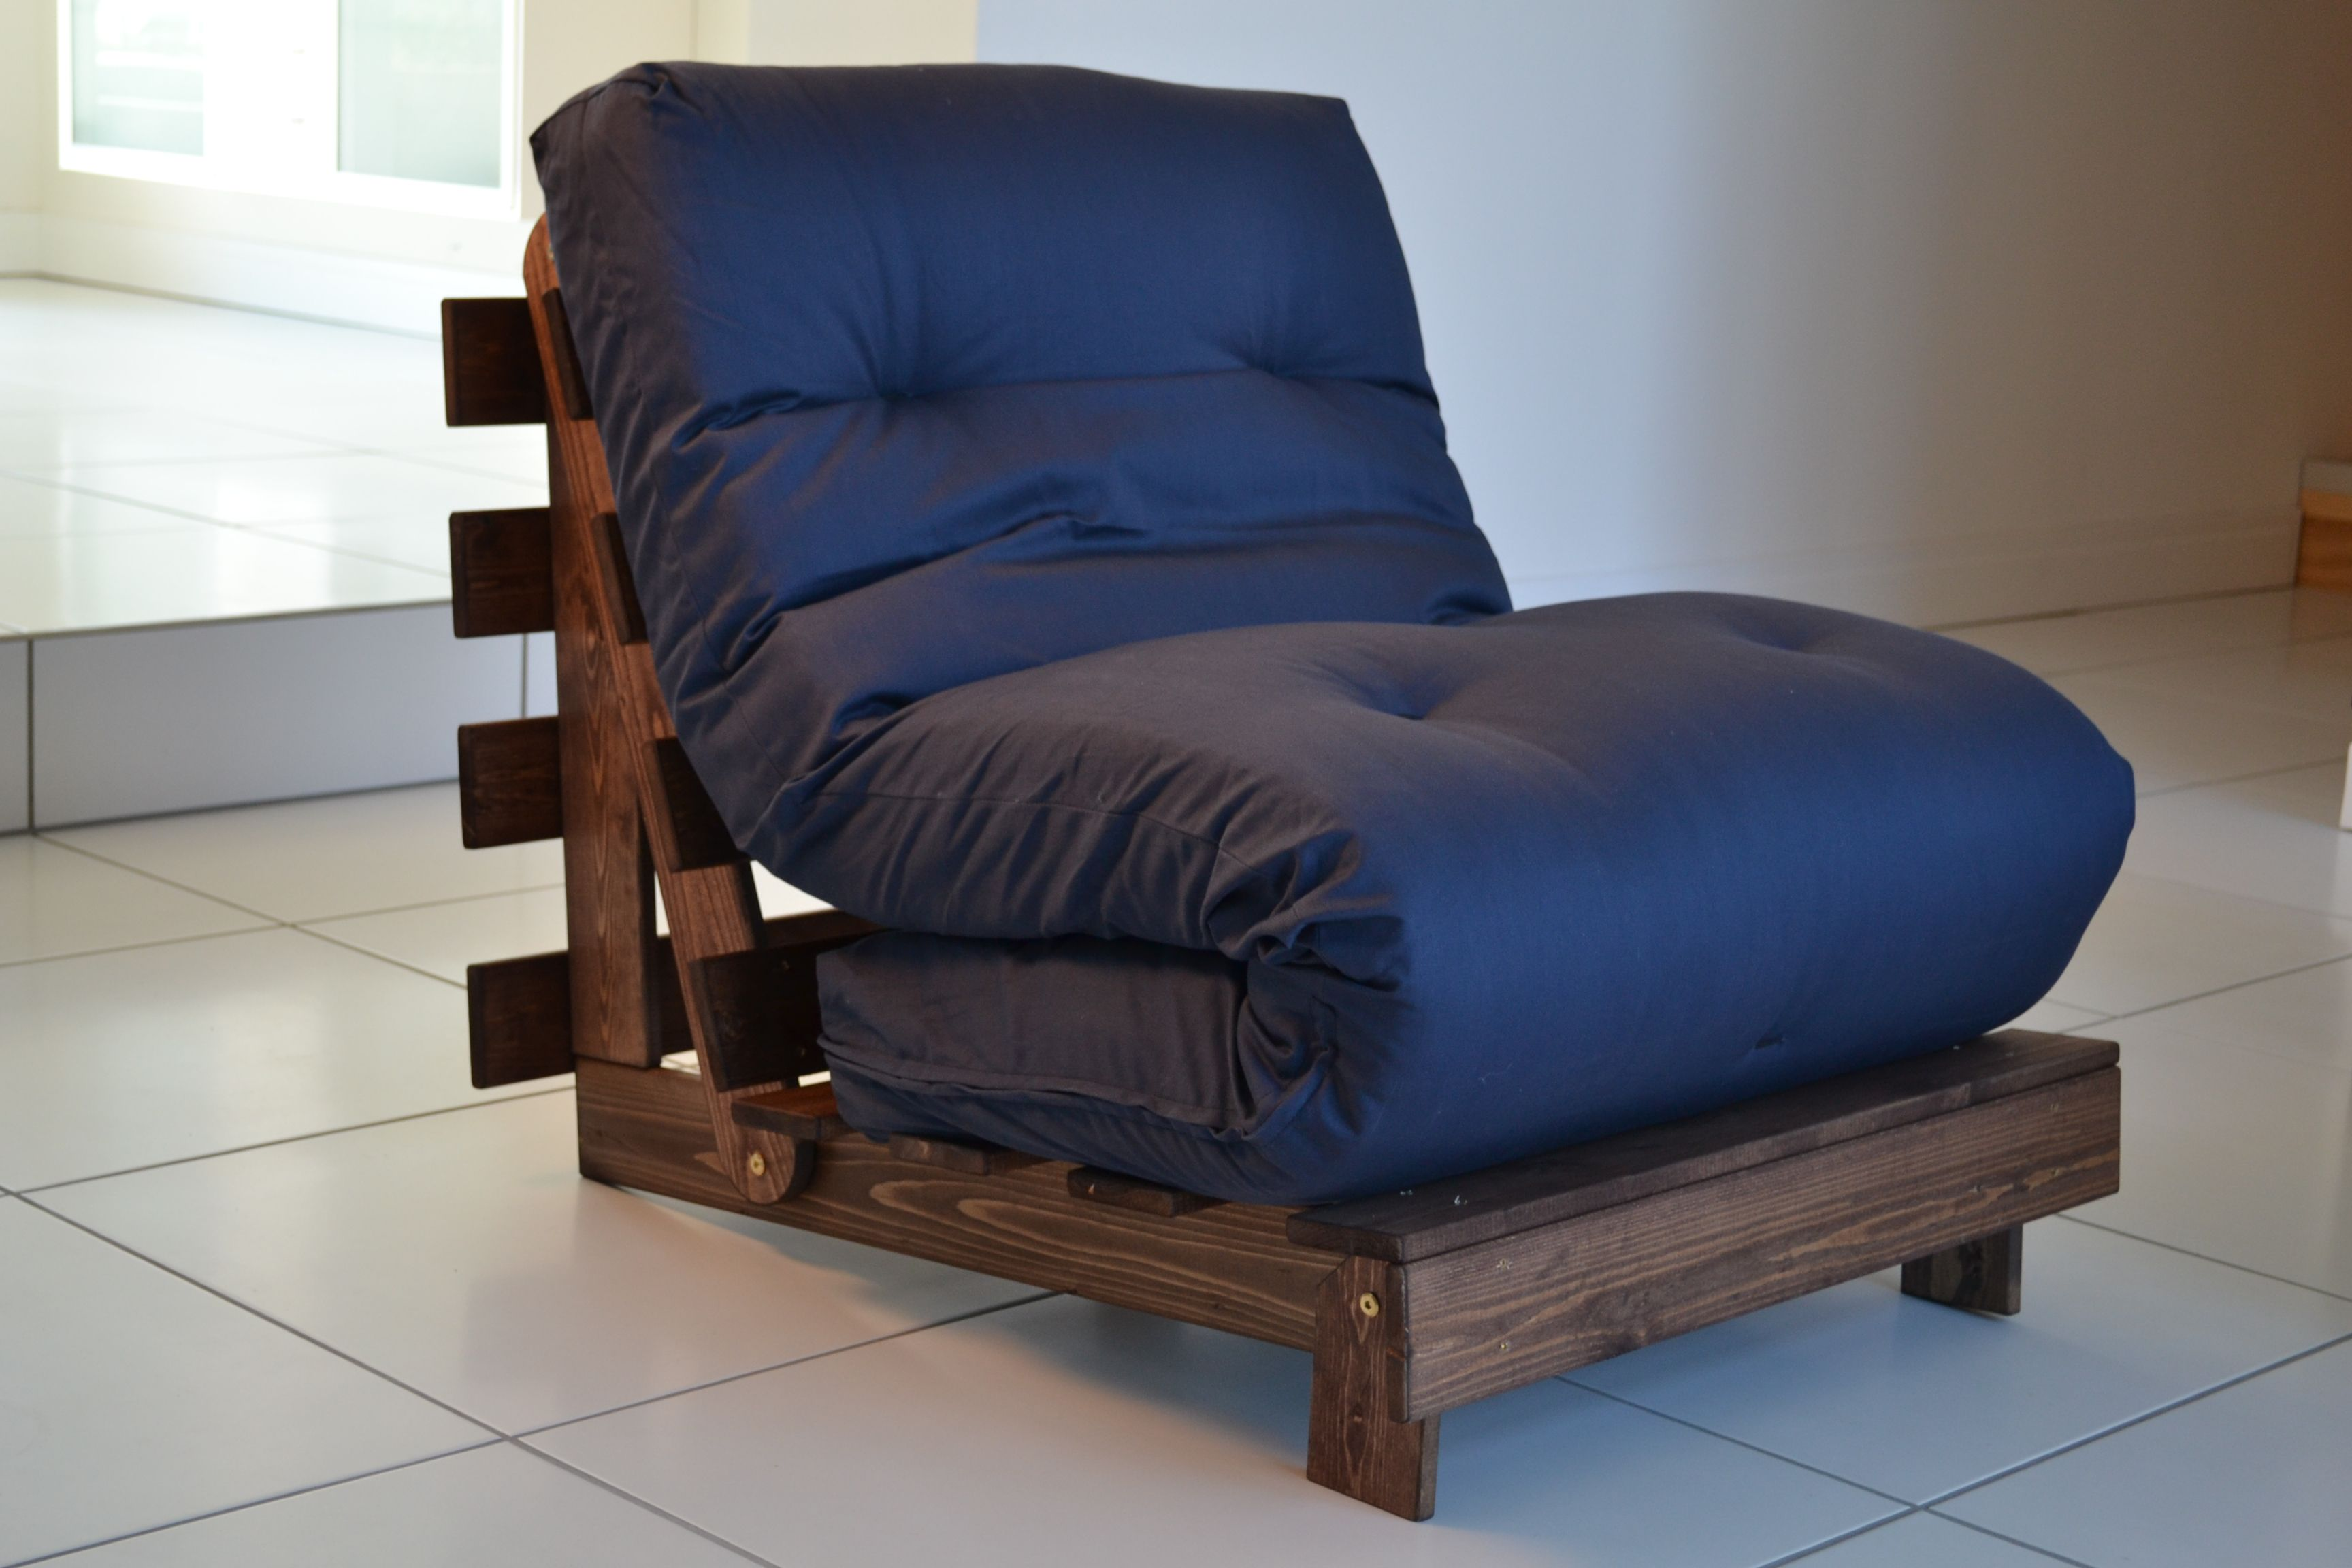 A blue futon folded up onto a brown DIY wood pallet chair Loft Bed  Murphy Bed  or Storage Bed  Here s How To Decide  . Living Room Chair Beds. Home Design Ideas